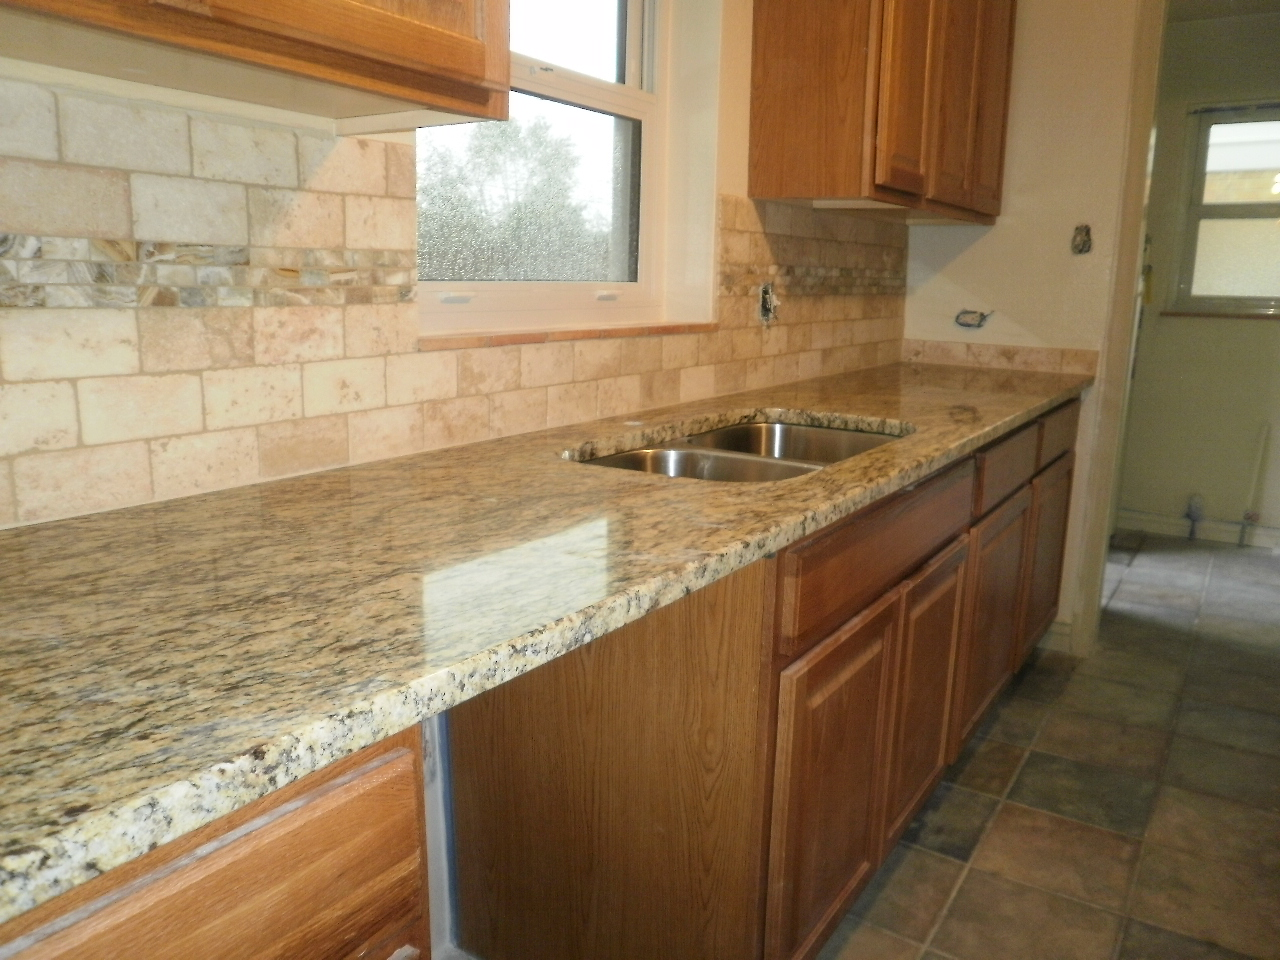 Integrity installations a division of front range backsplash just completed 3x6 - Kitchen backsplash ideas pictures ...